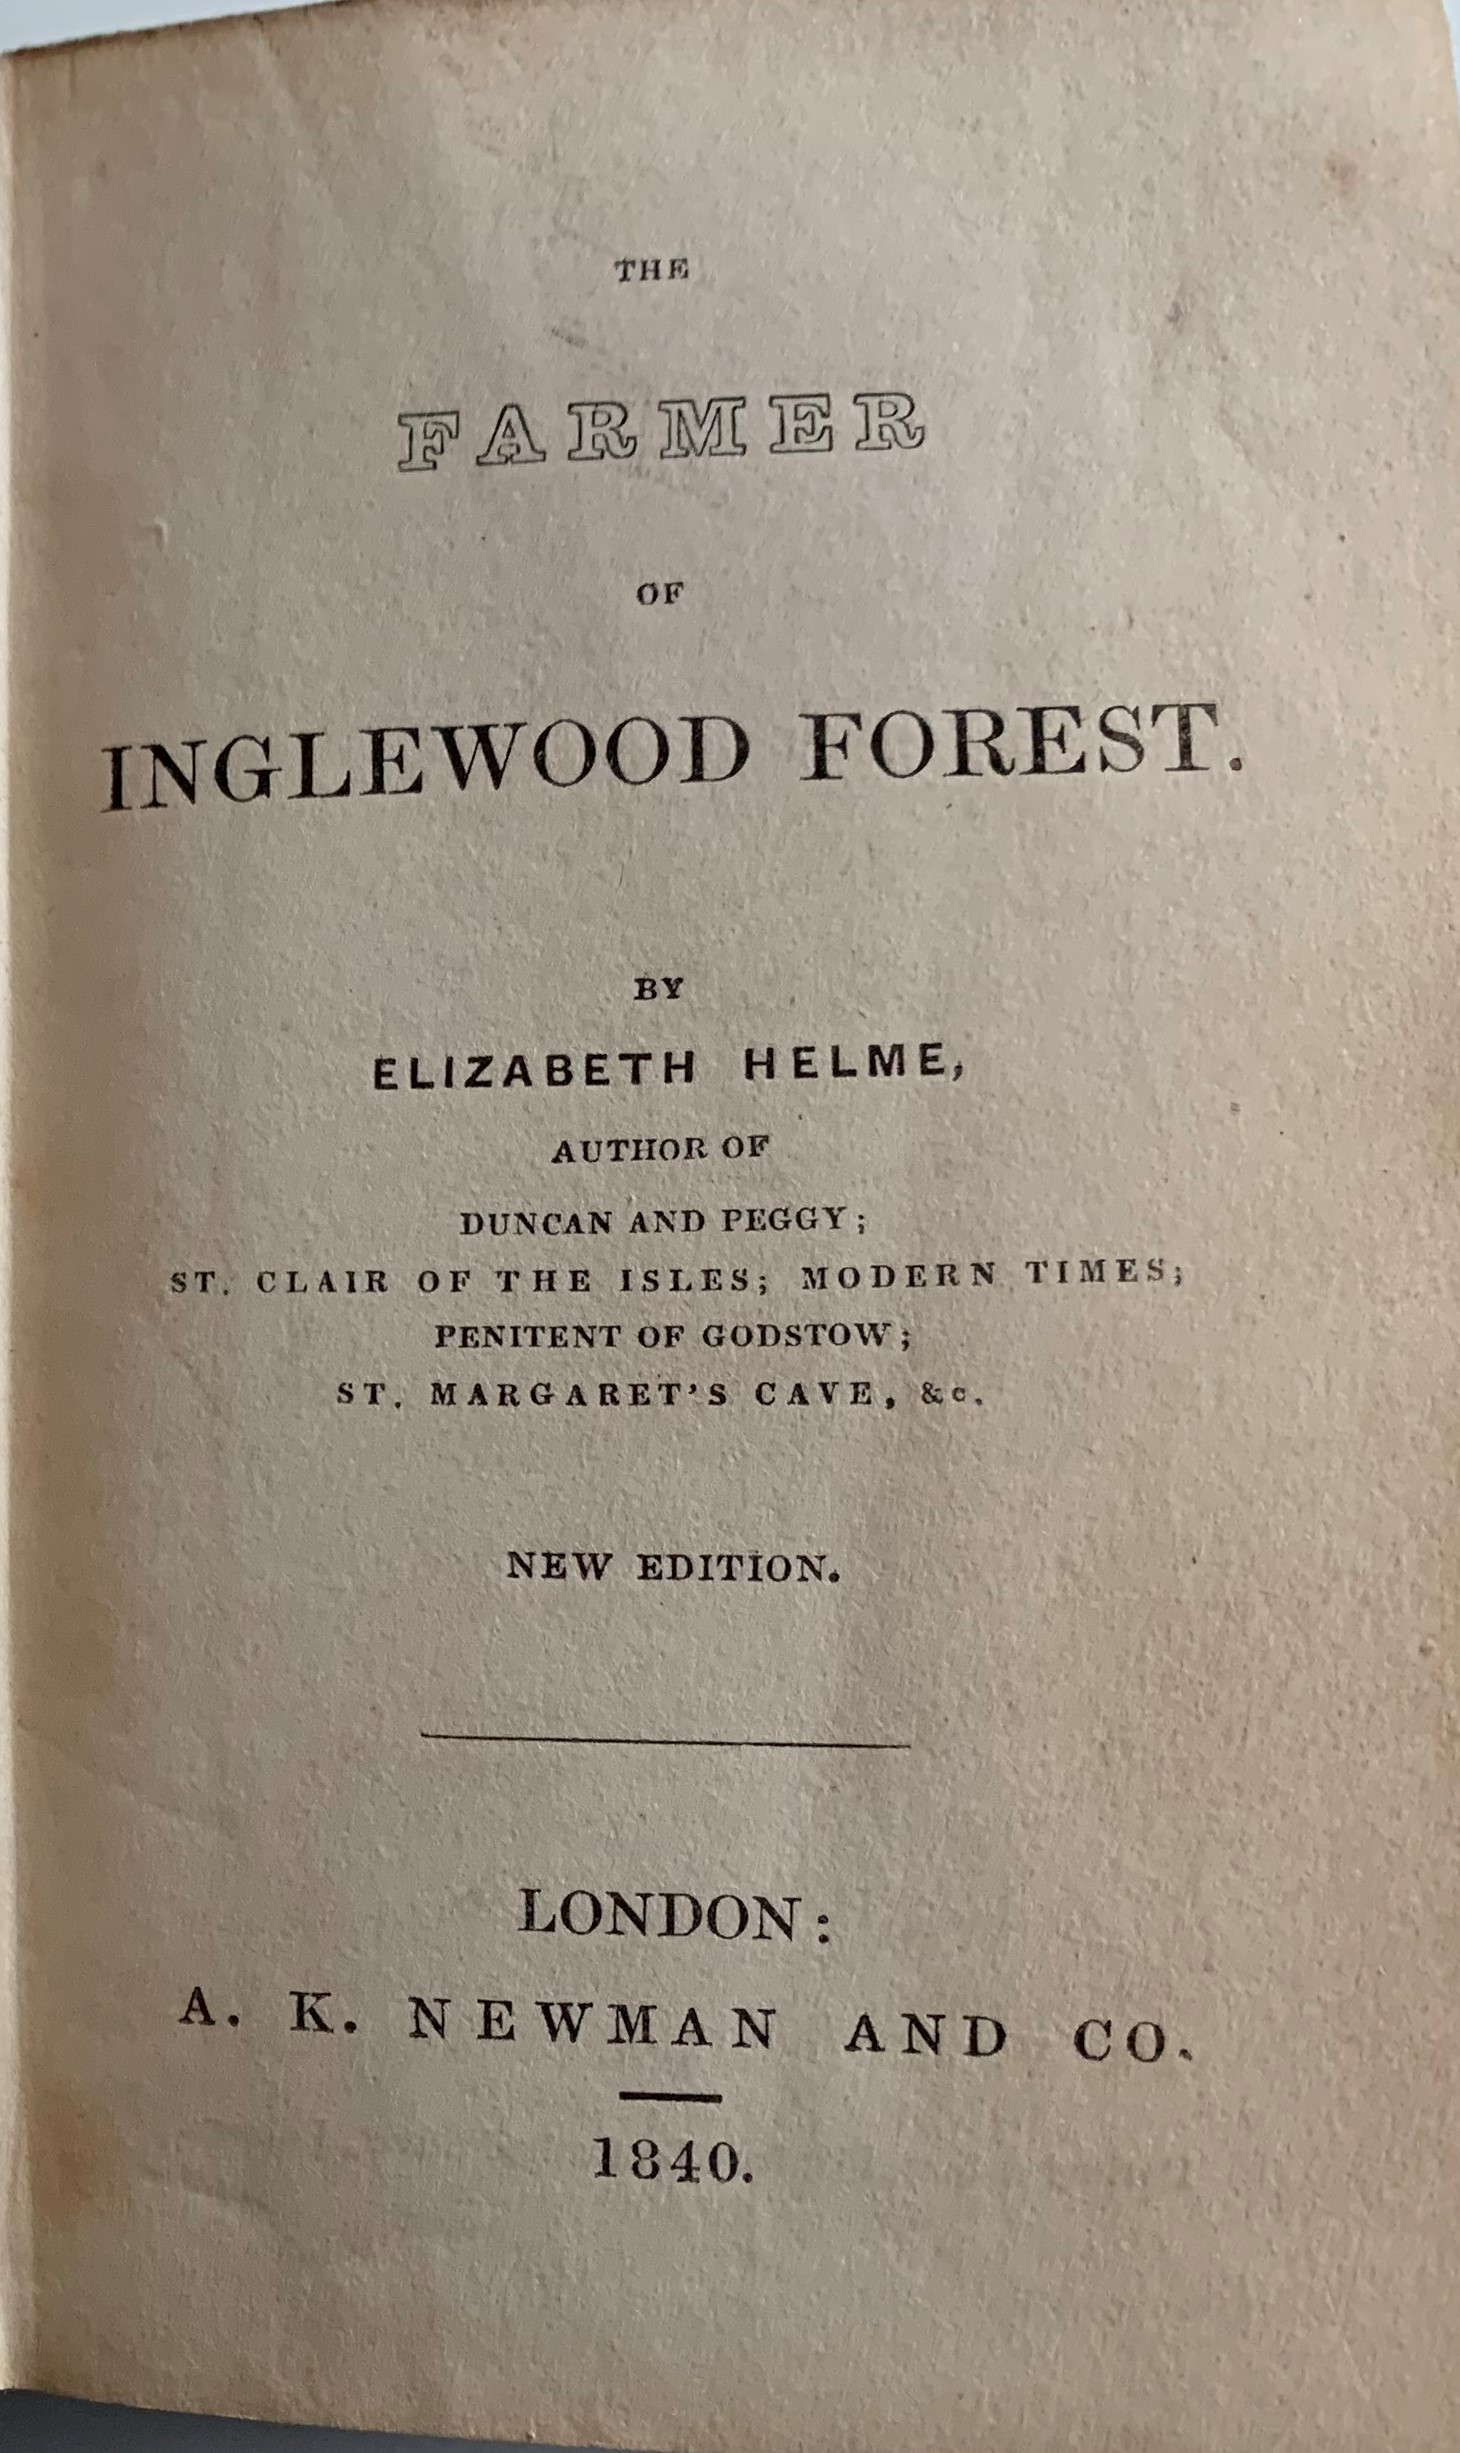 Image for The Farmer of Inglewood Forest.